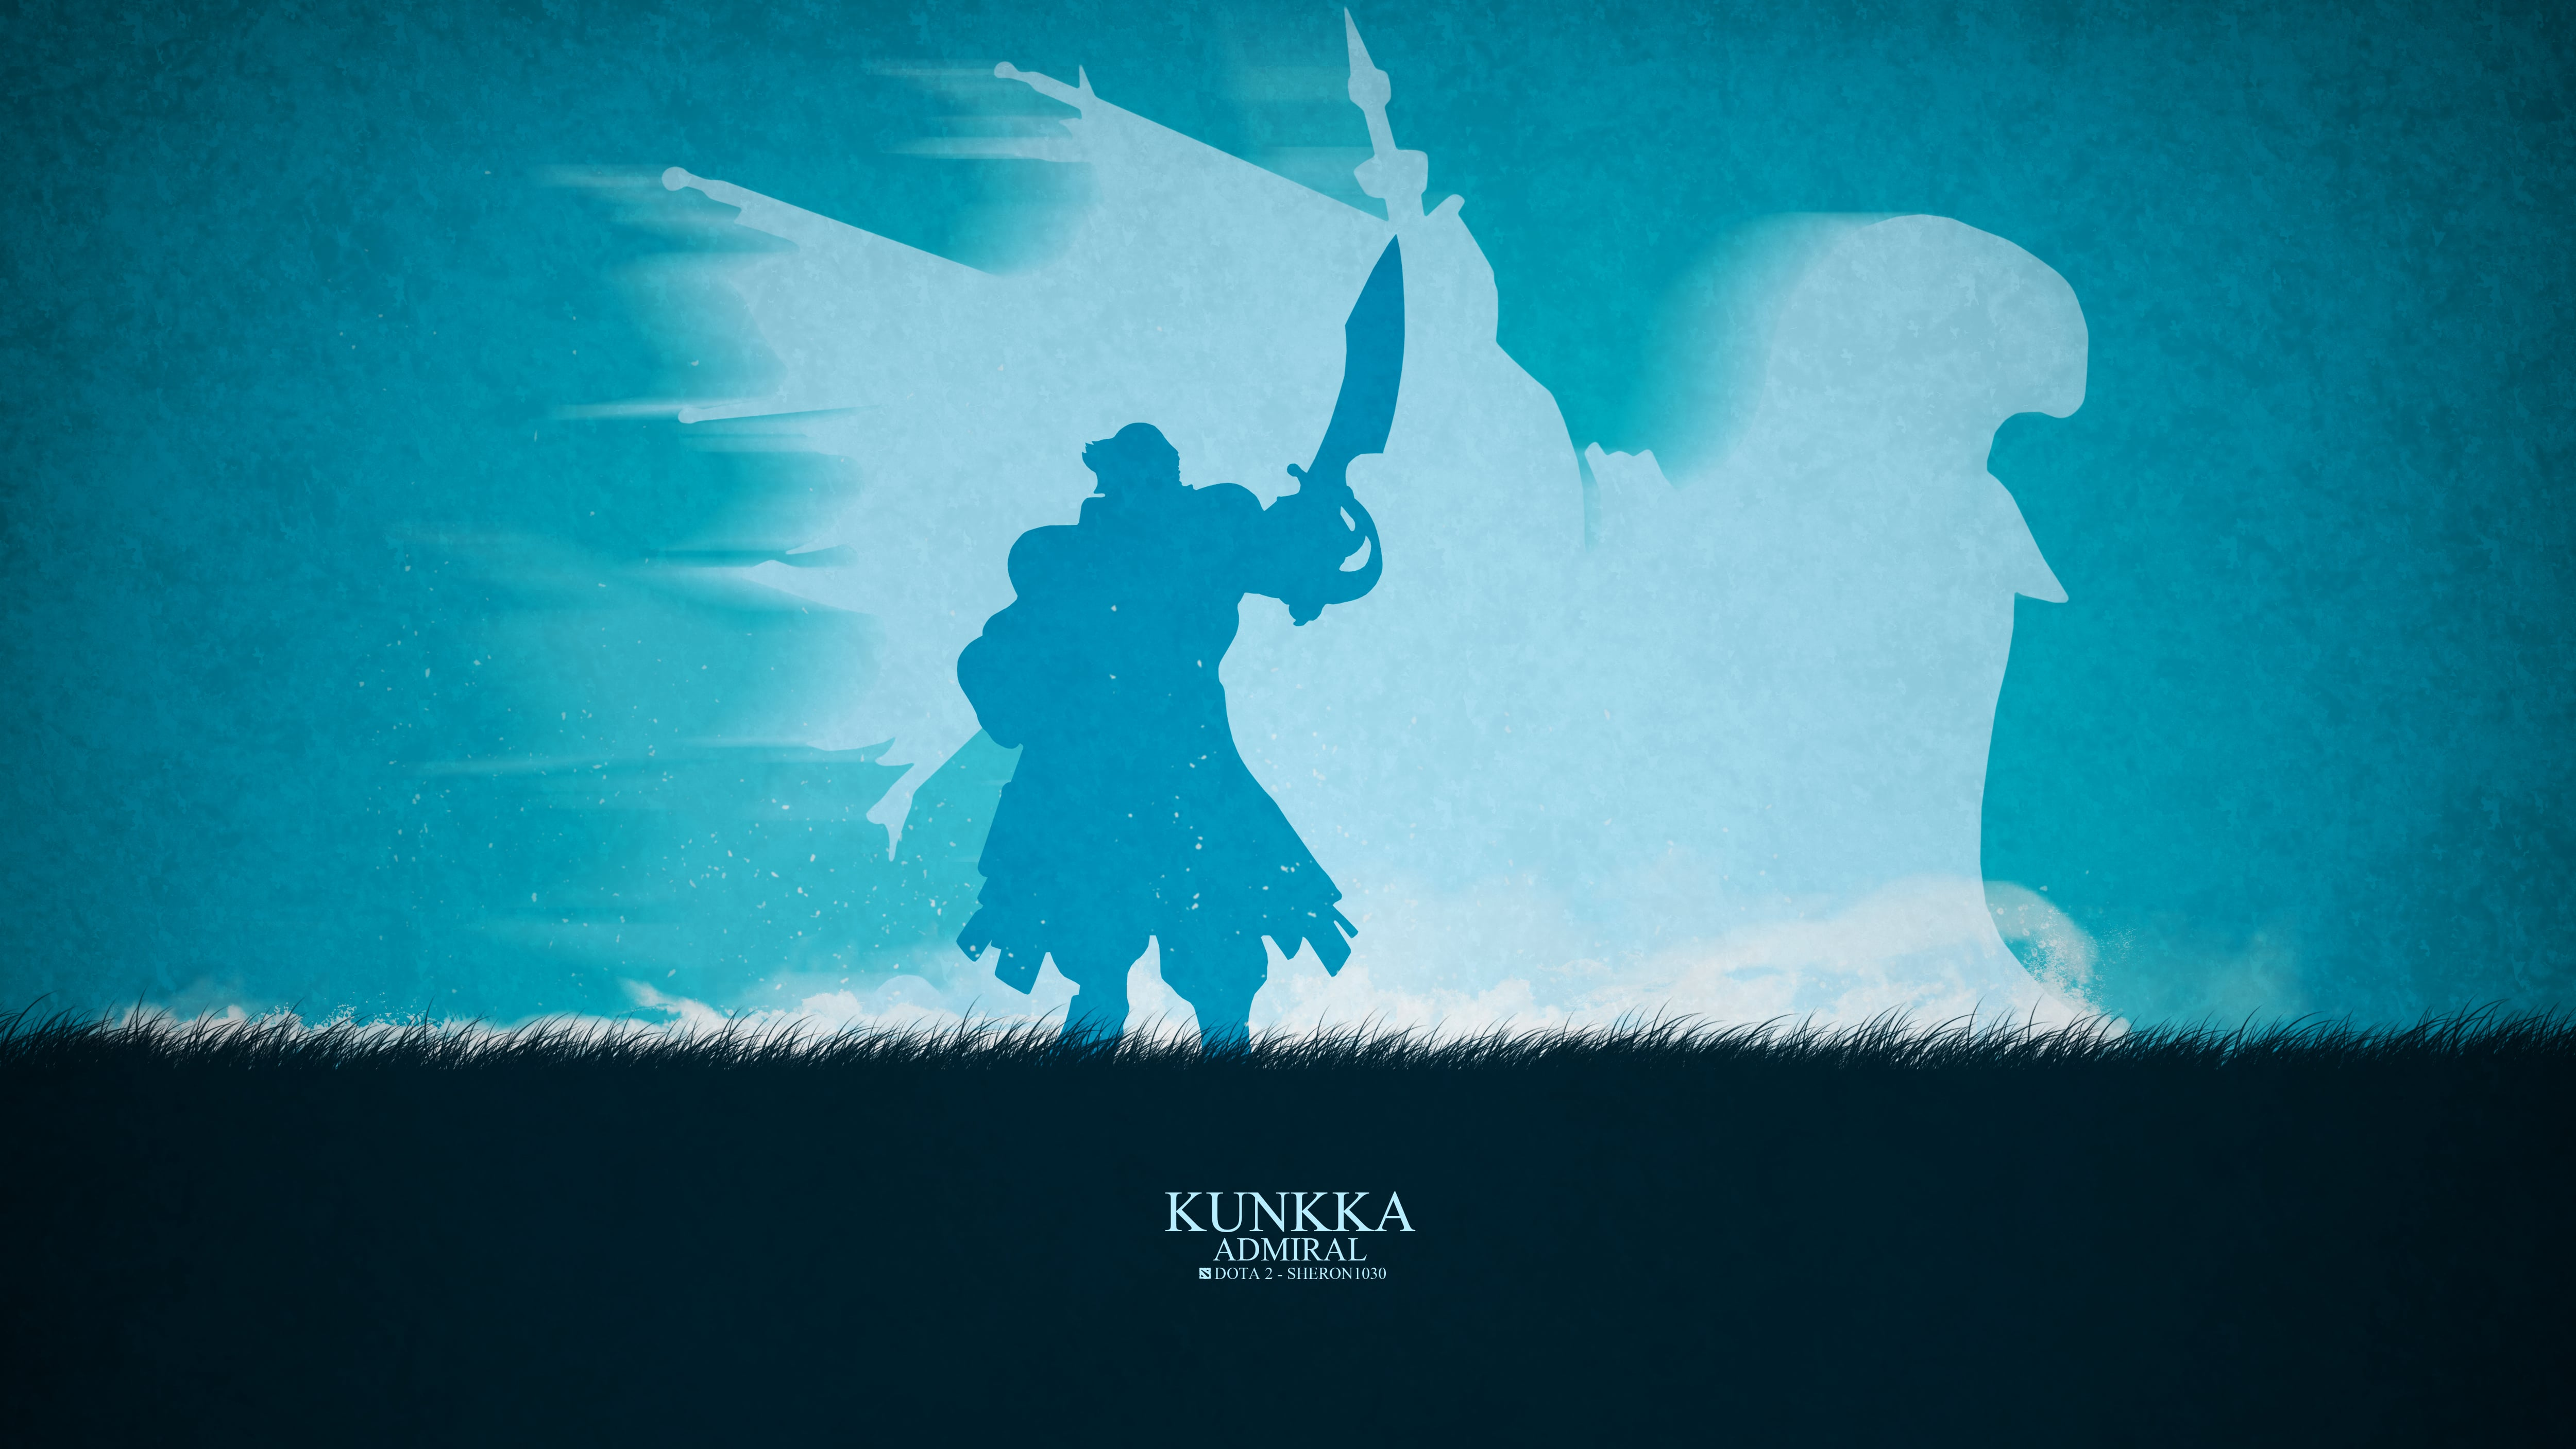 Dota2 : Kunkka Backgrounds